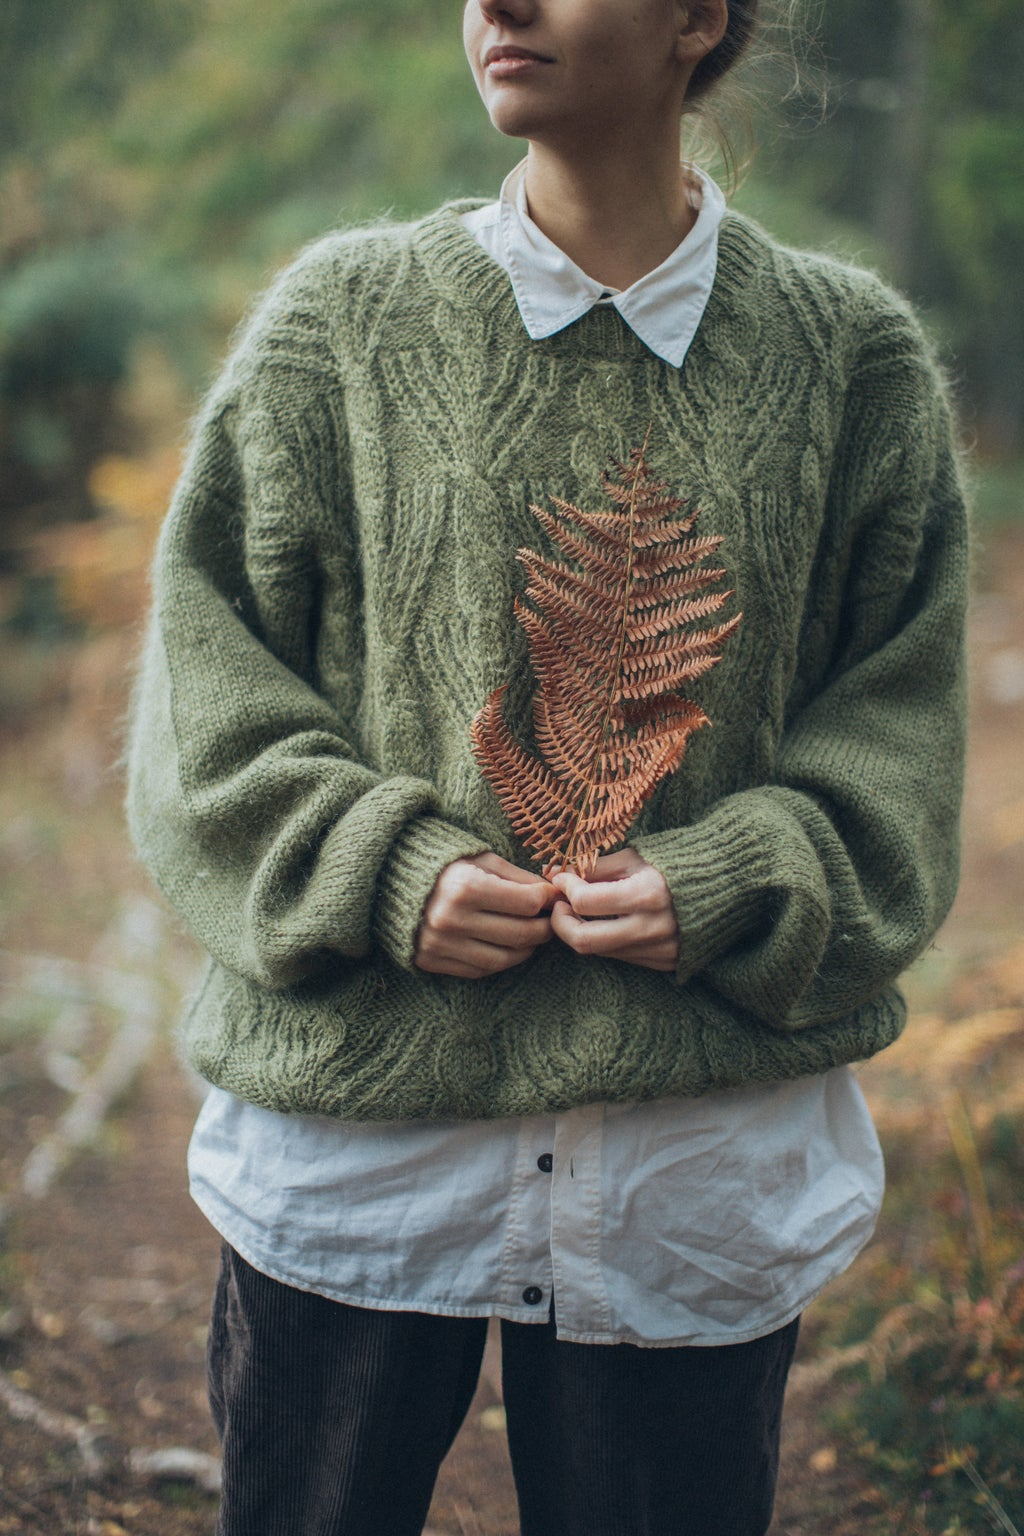 woman in sweater holding leaf